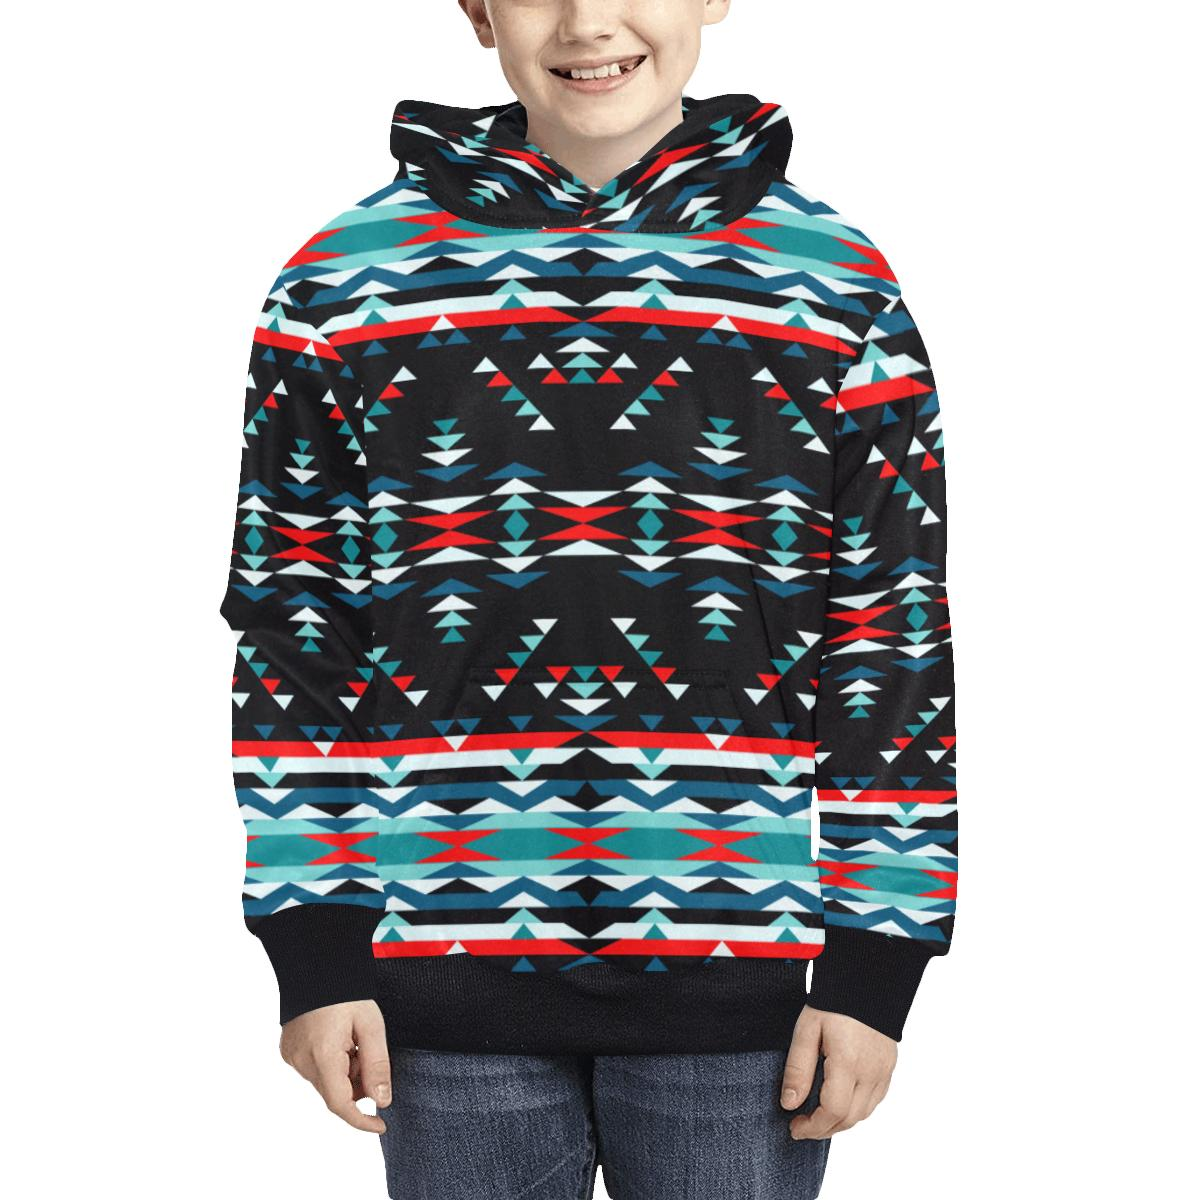 Visions of Peaceful Nights Kids' All Over Print Hoodie (Model H38) Kids' AOP Hoodie (H38) e-joyer